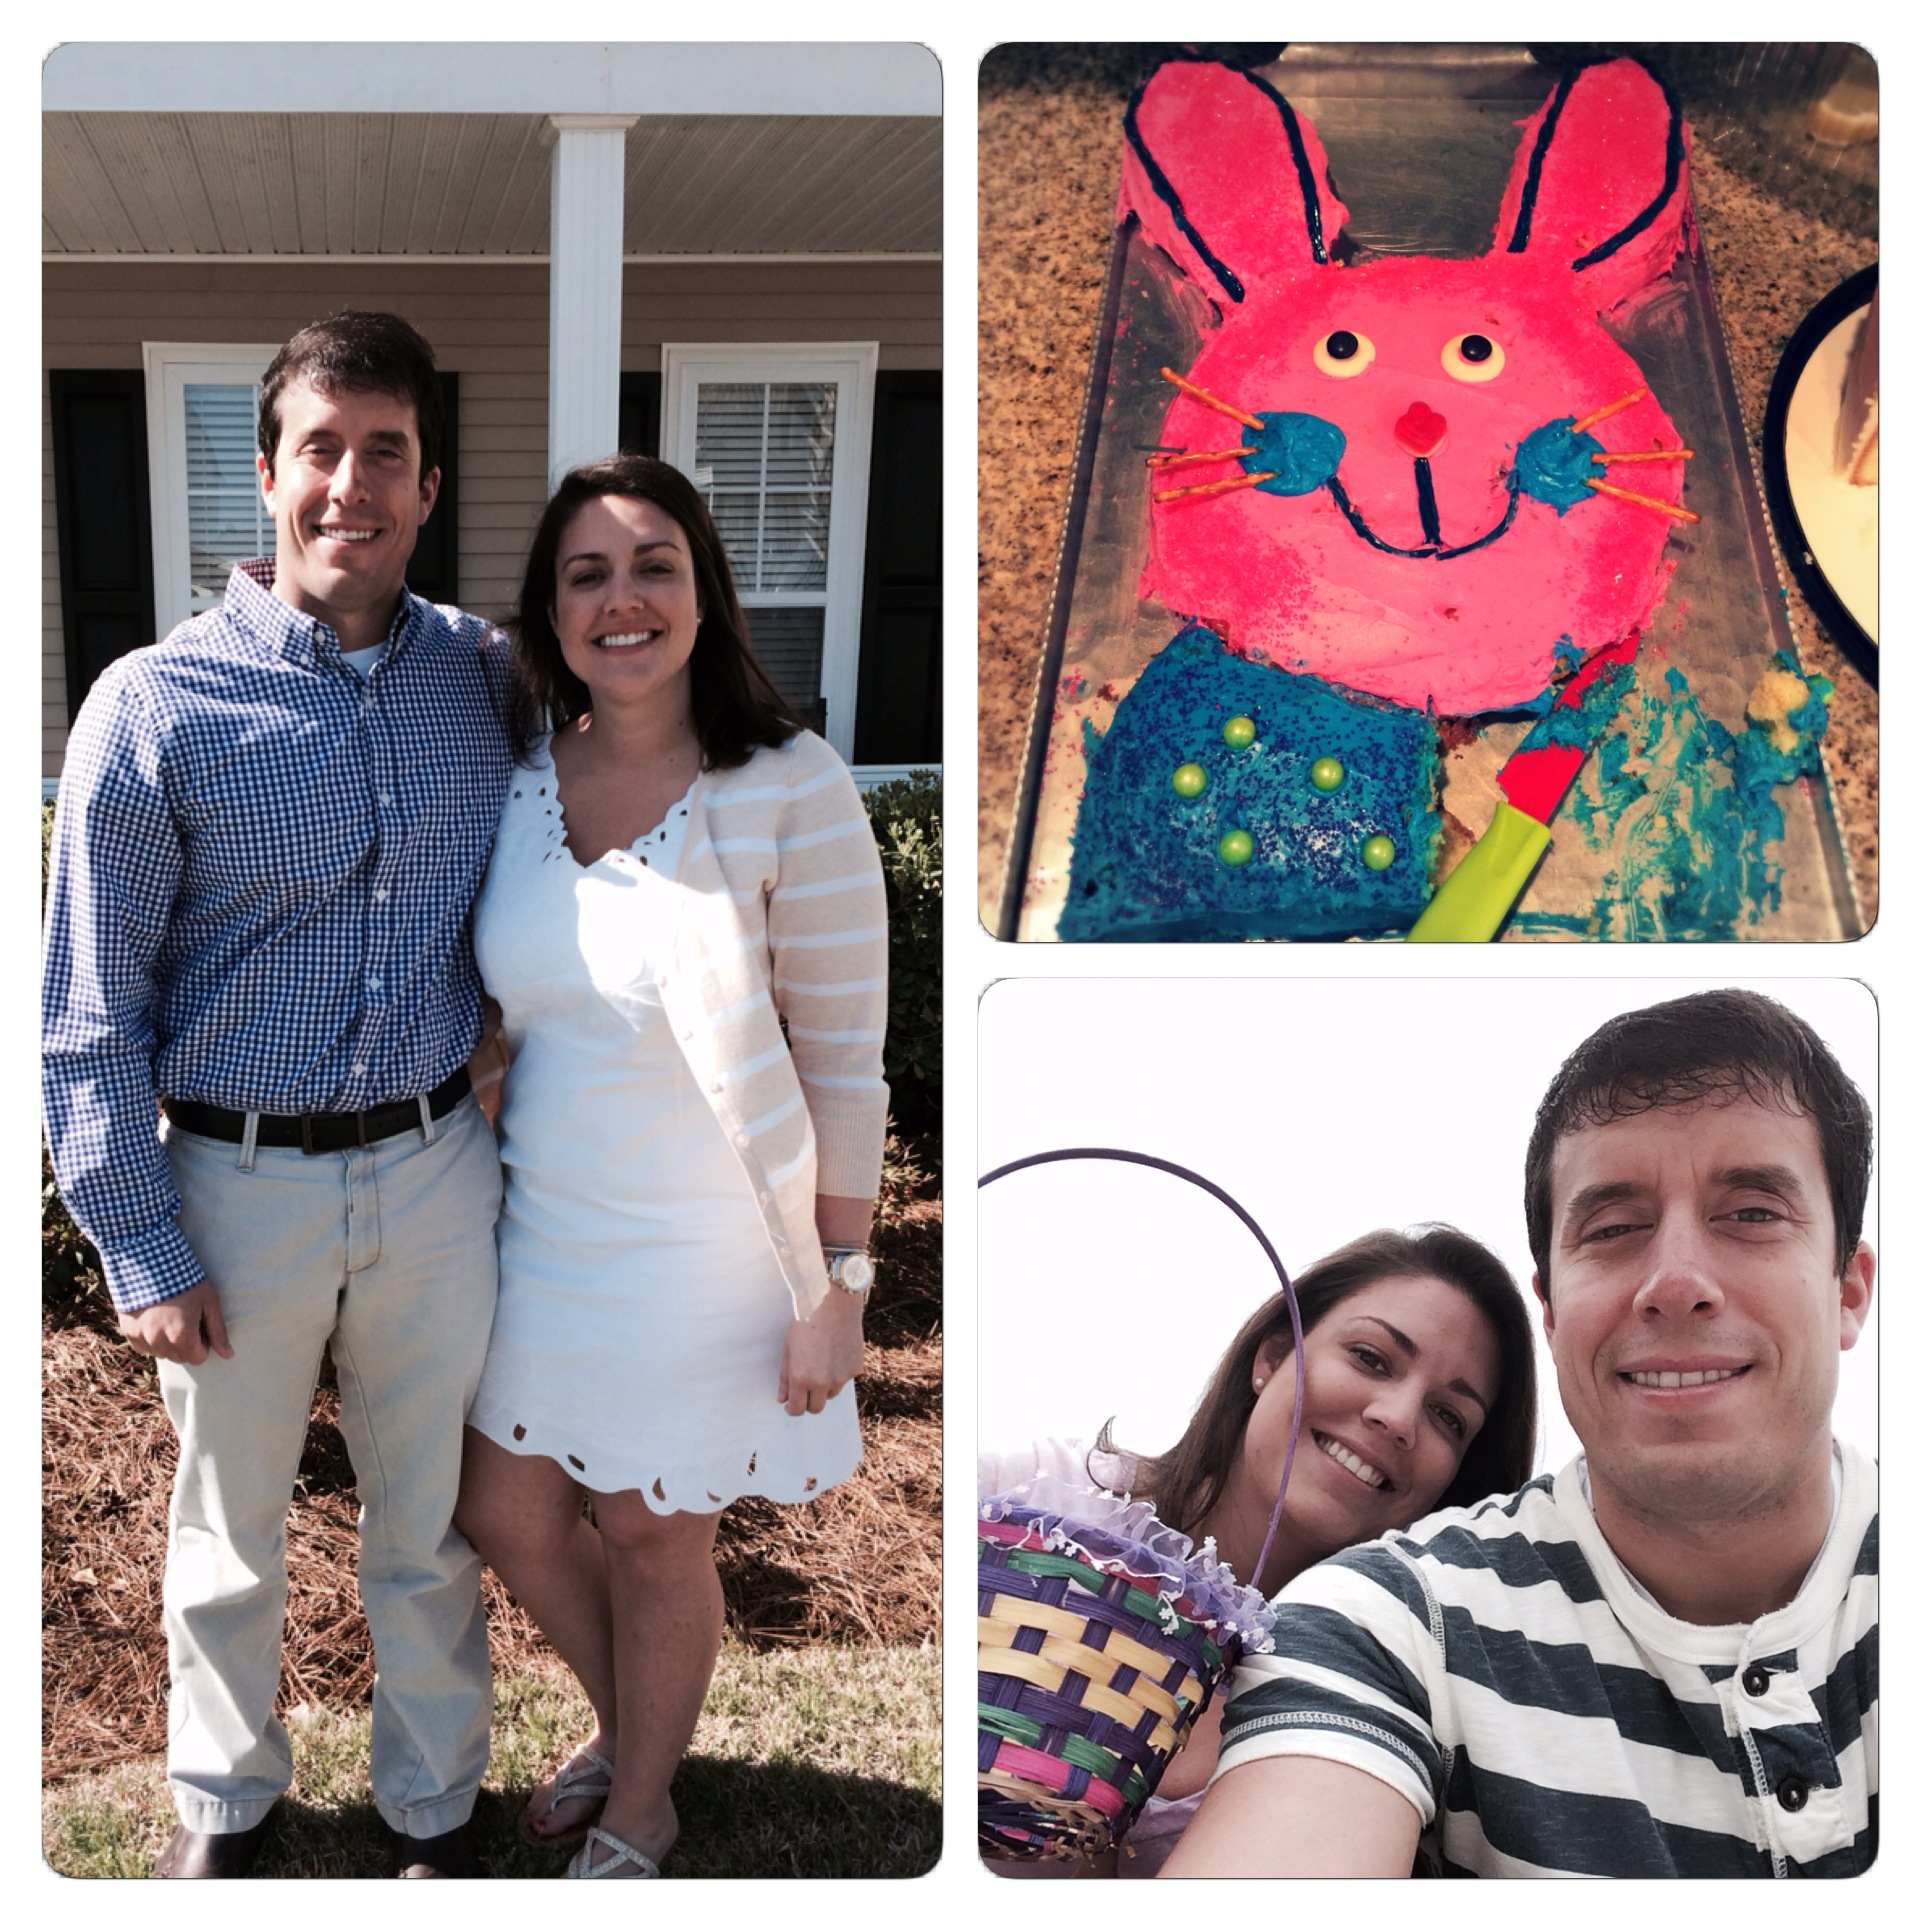 I had a very nice Easter!